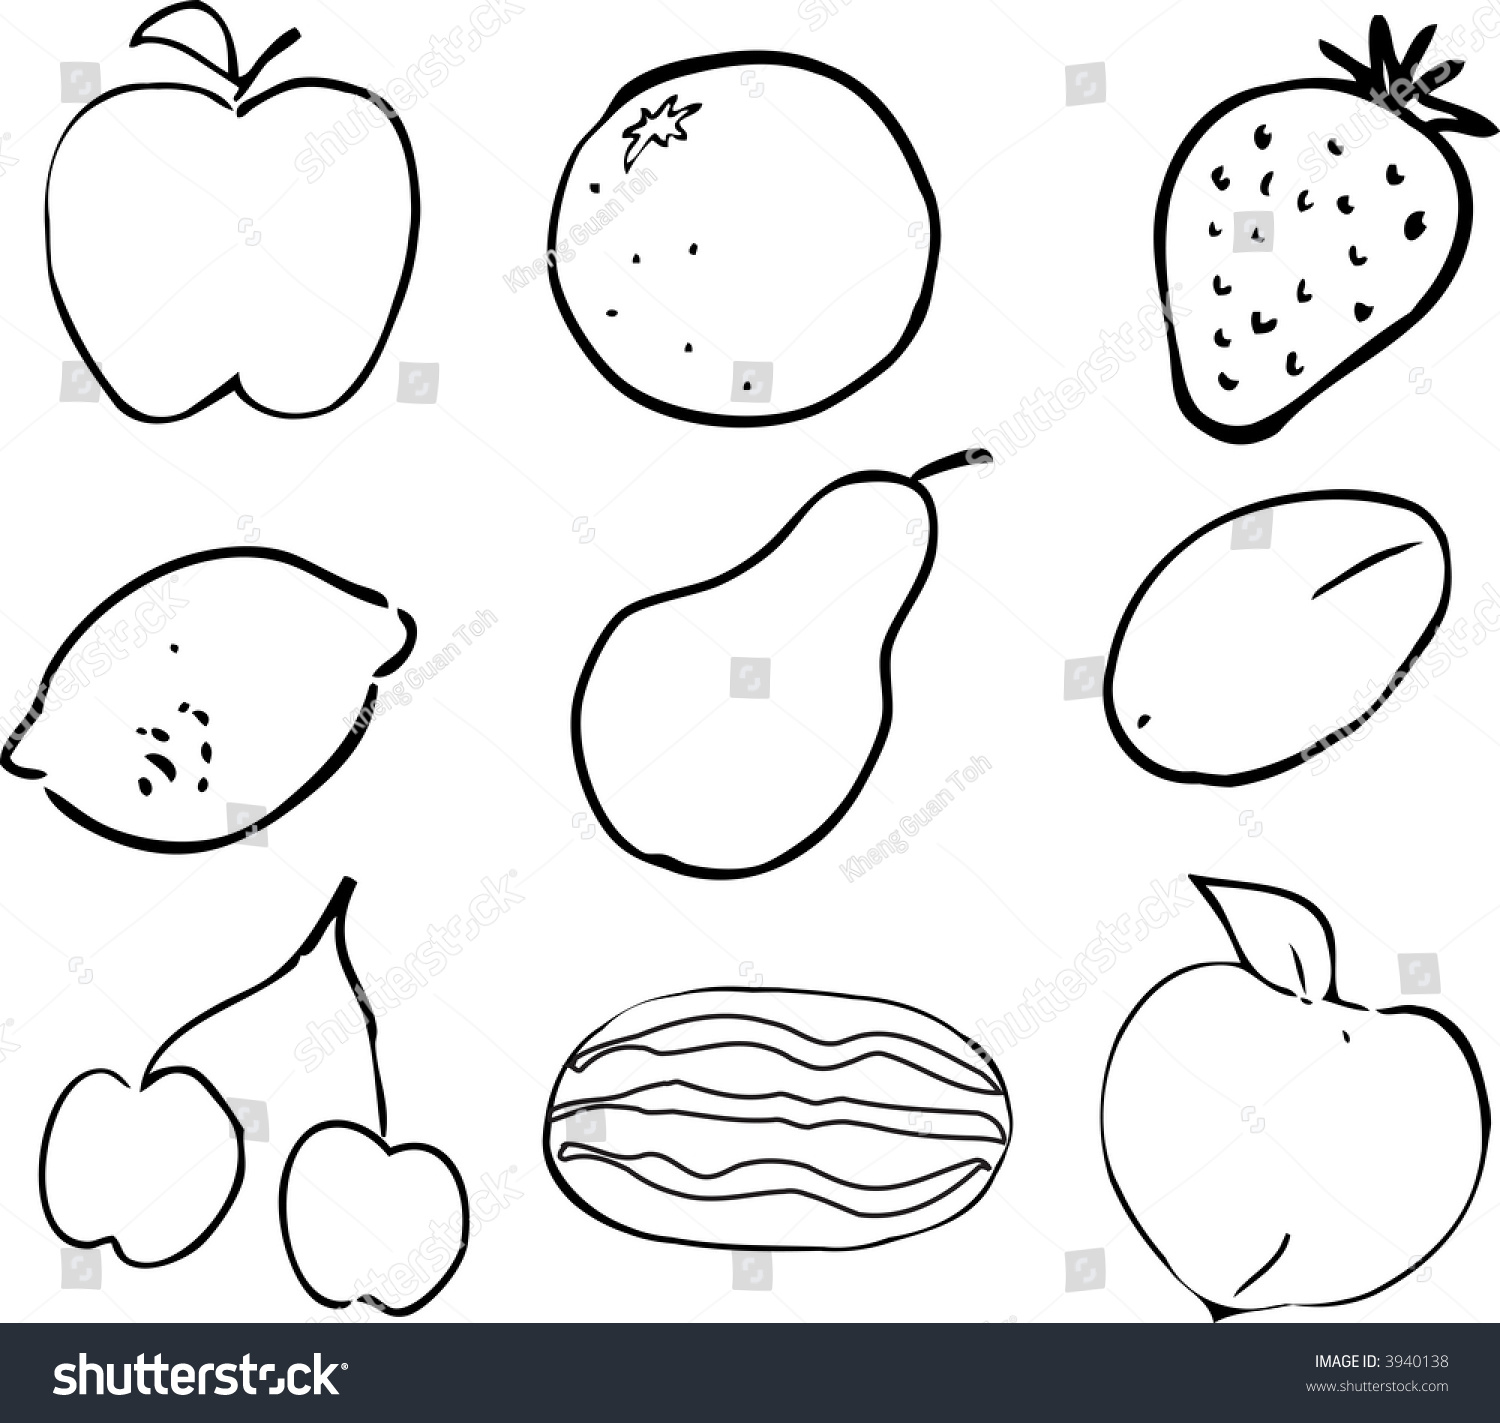 Black & White lineart Illustration of fruits, hand-drawn look: apple ...